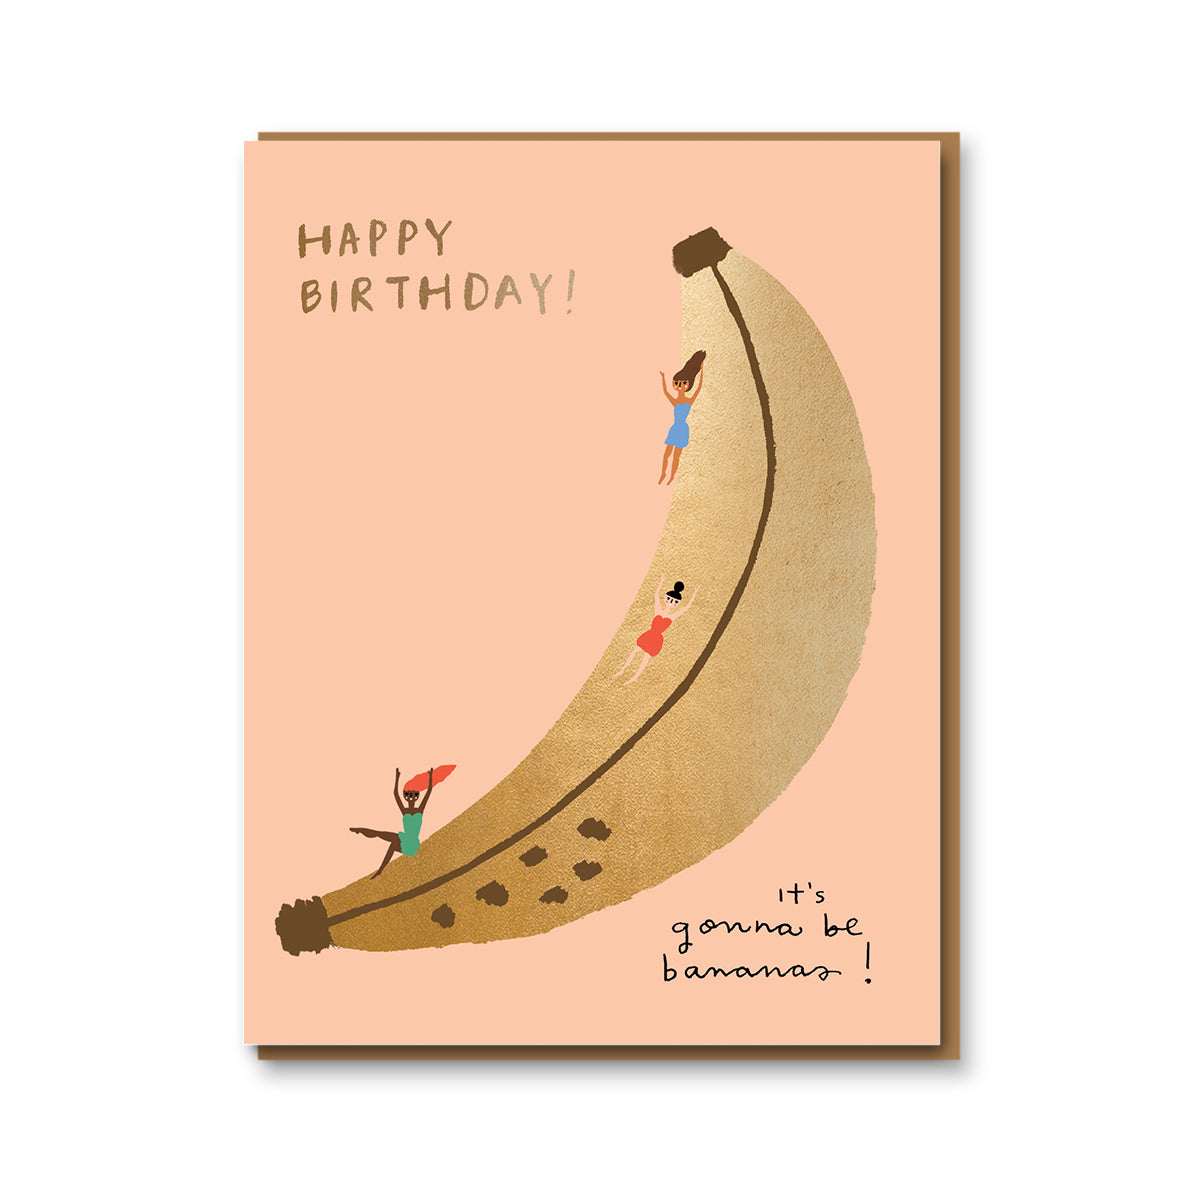 Banana Slide Card